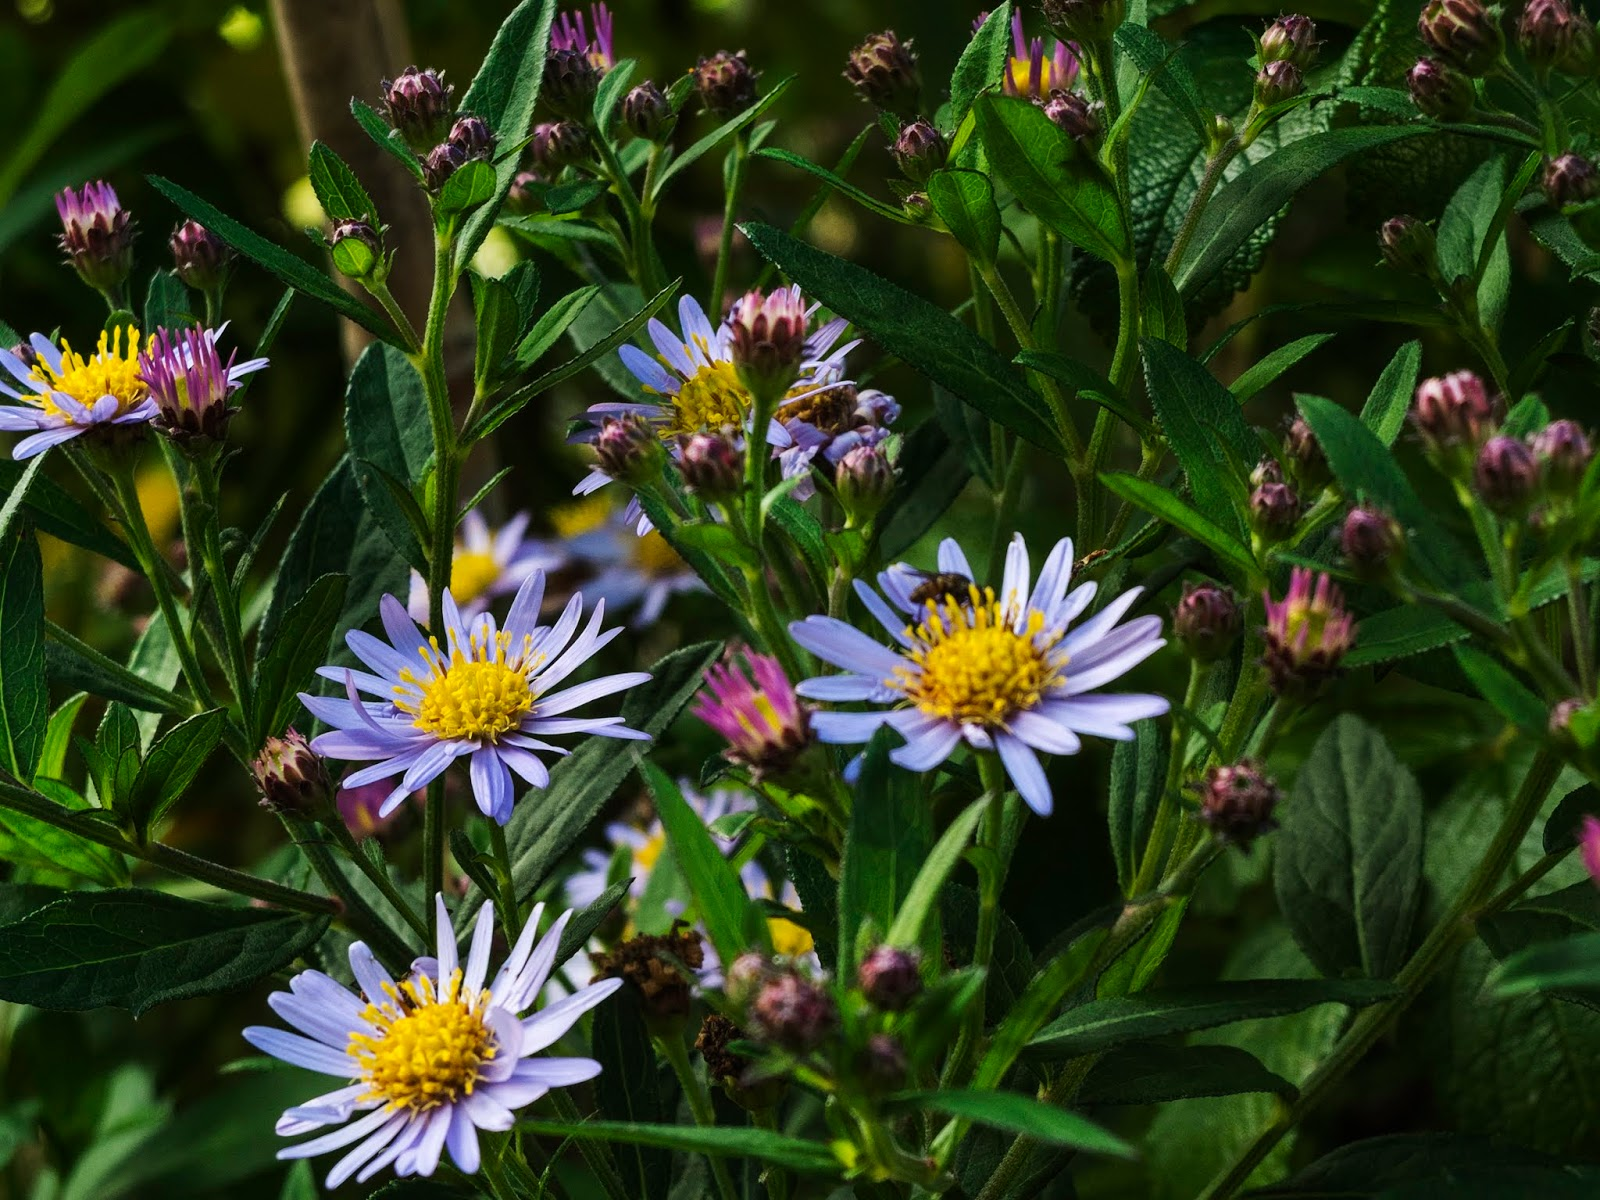 Tiny purple Aster flowers with yellow centres.